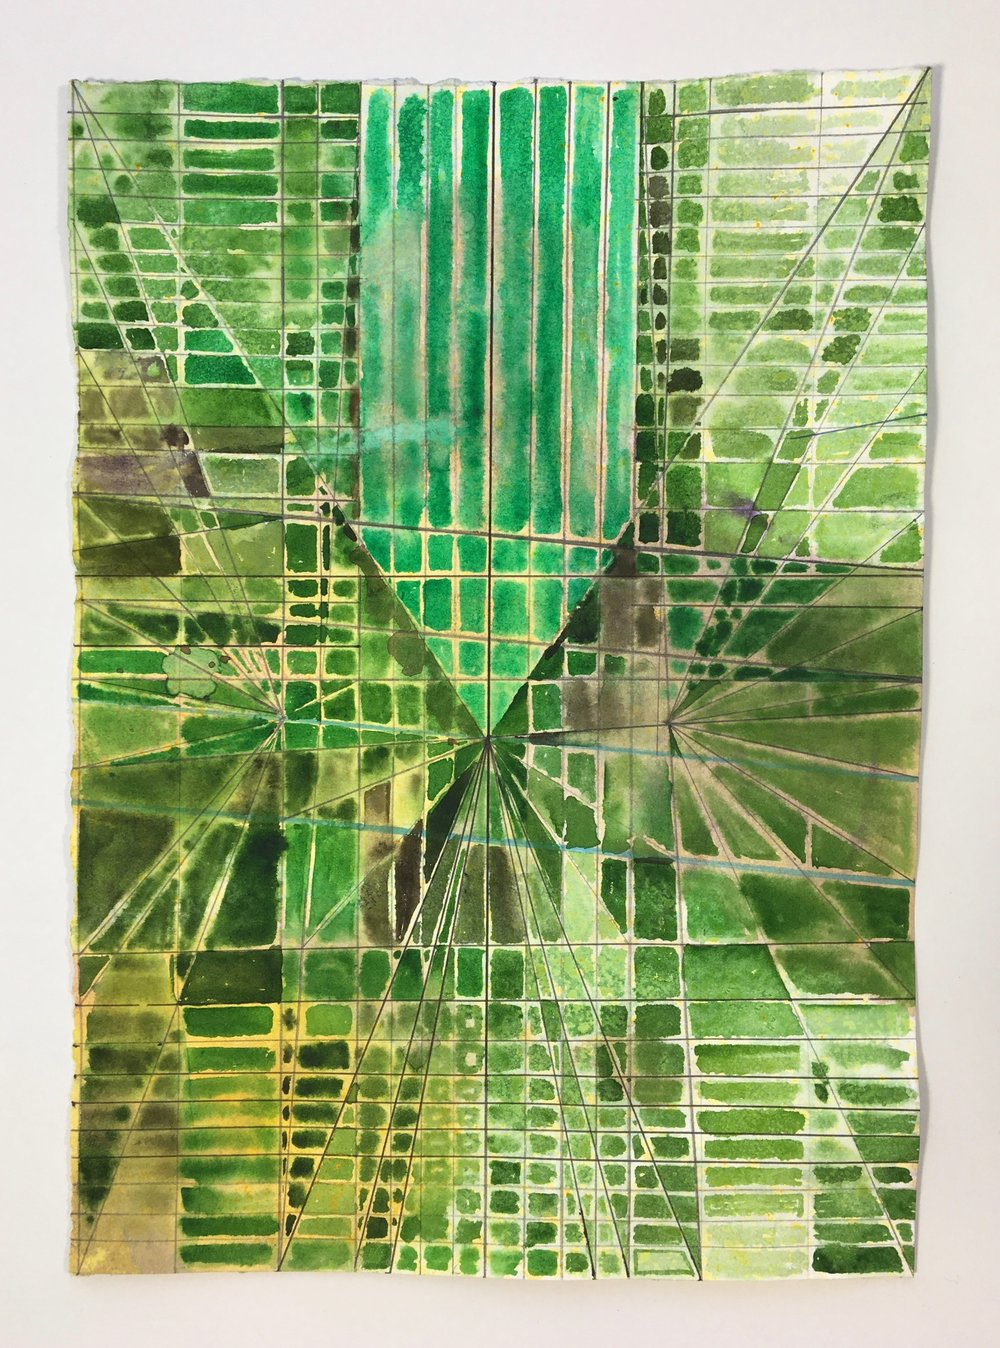 Joe Lloyd, Untitled (Green), 2017, watercolor on paper, 14 x 11 inches